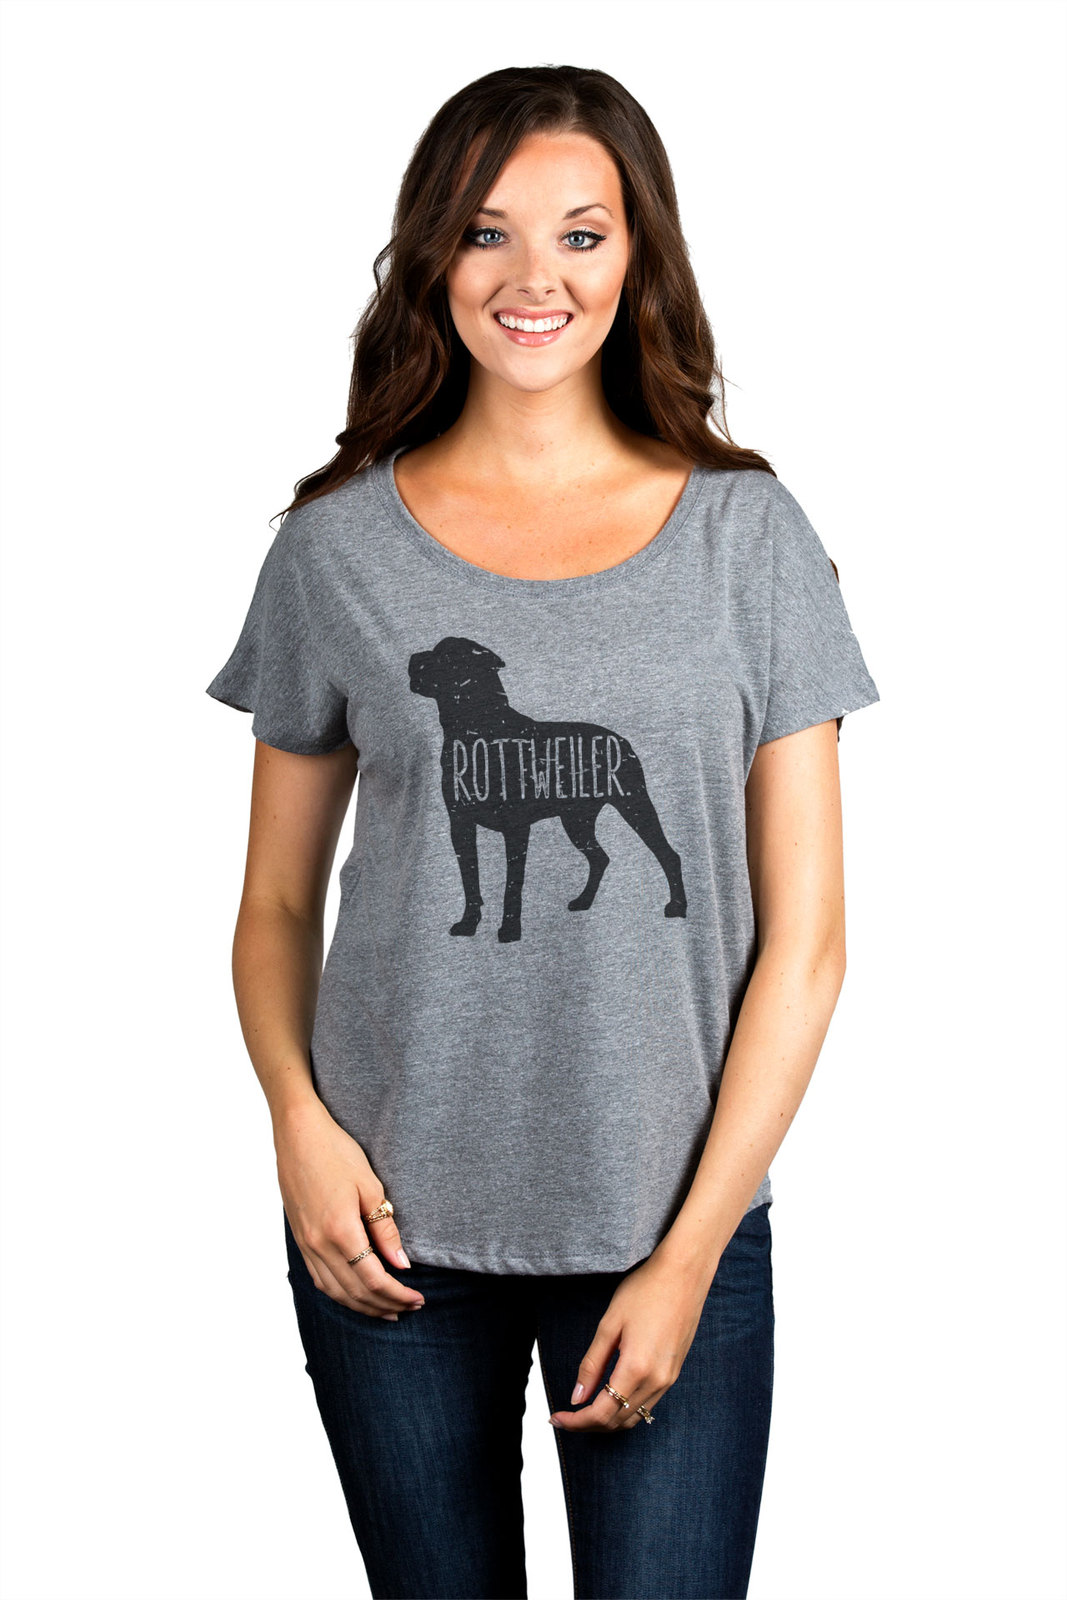 Thread Tank Rottweiler Dog Silhouette Women's Slouchy Dolman T-Shirt Tee Heather